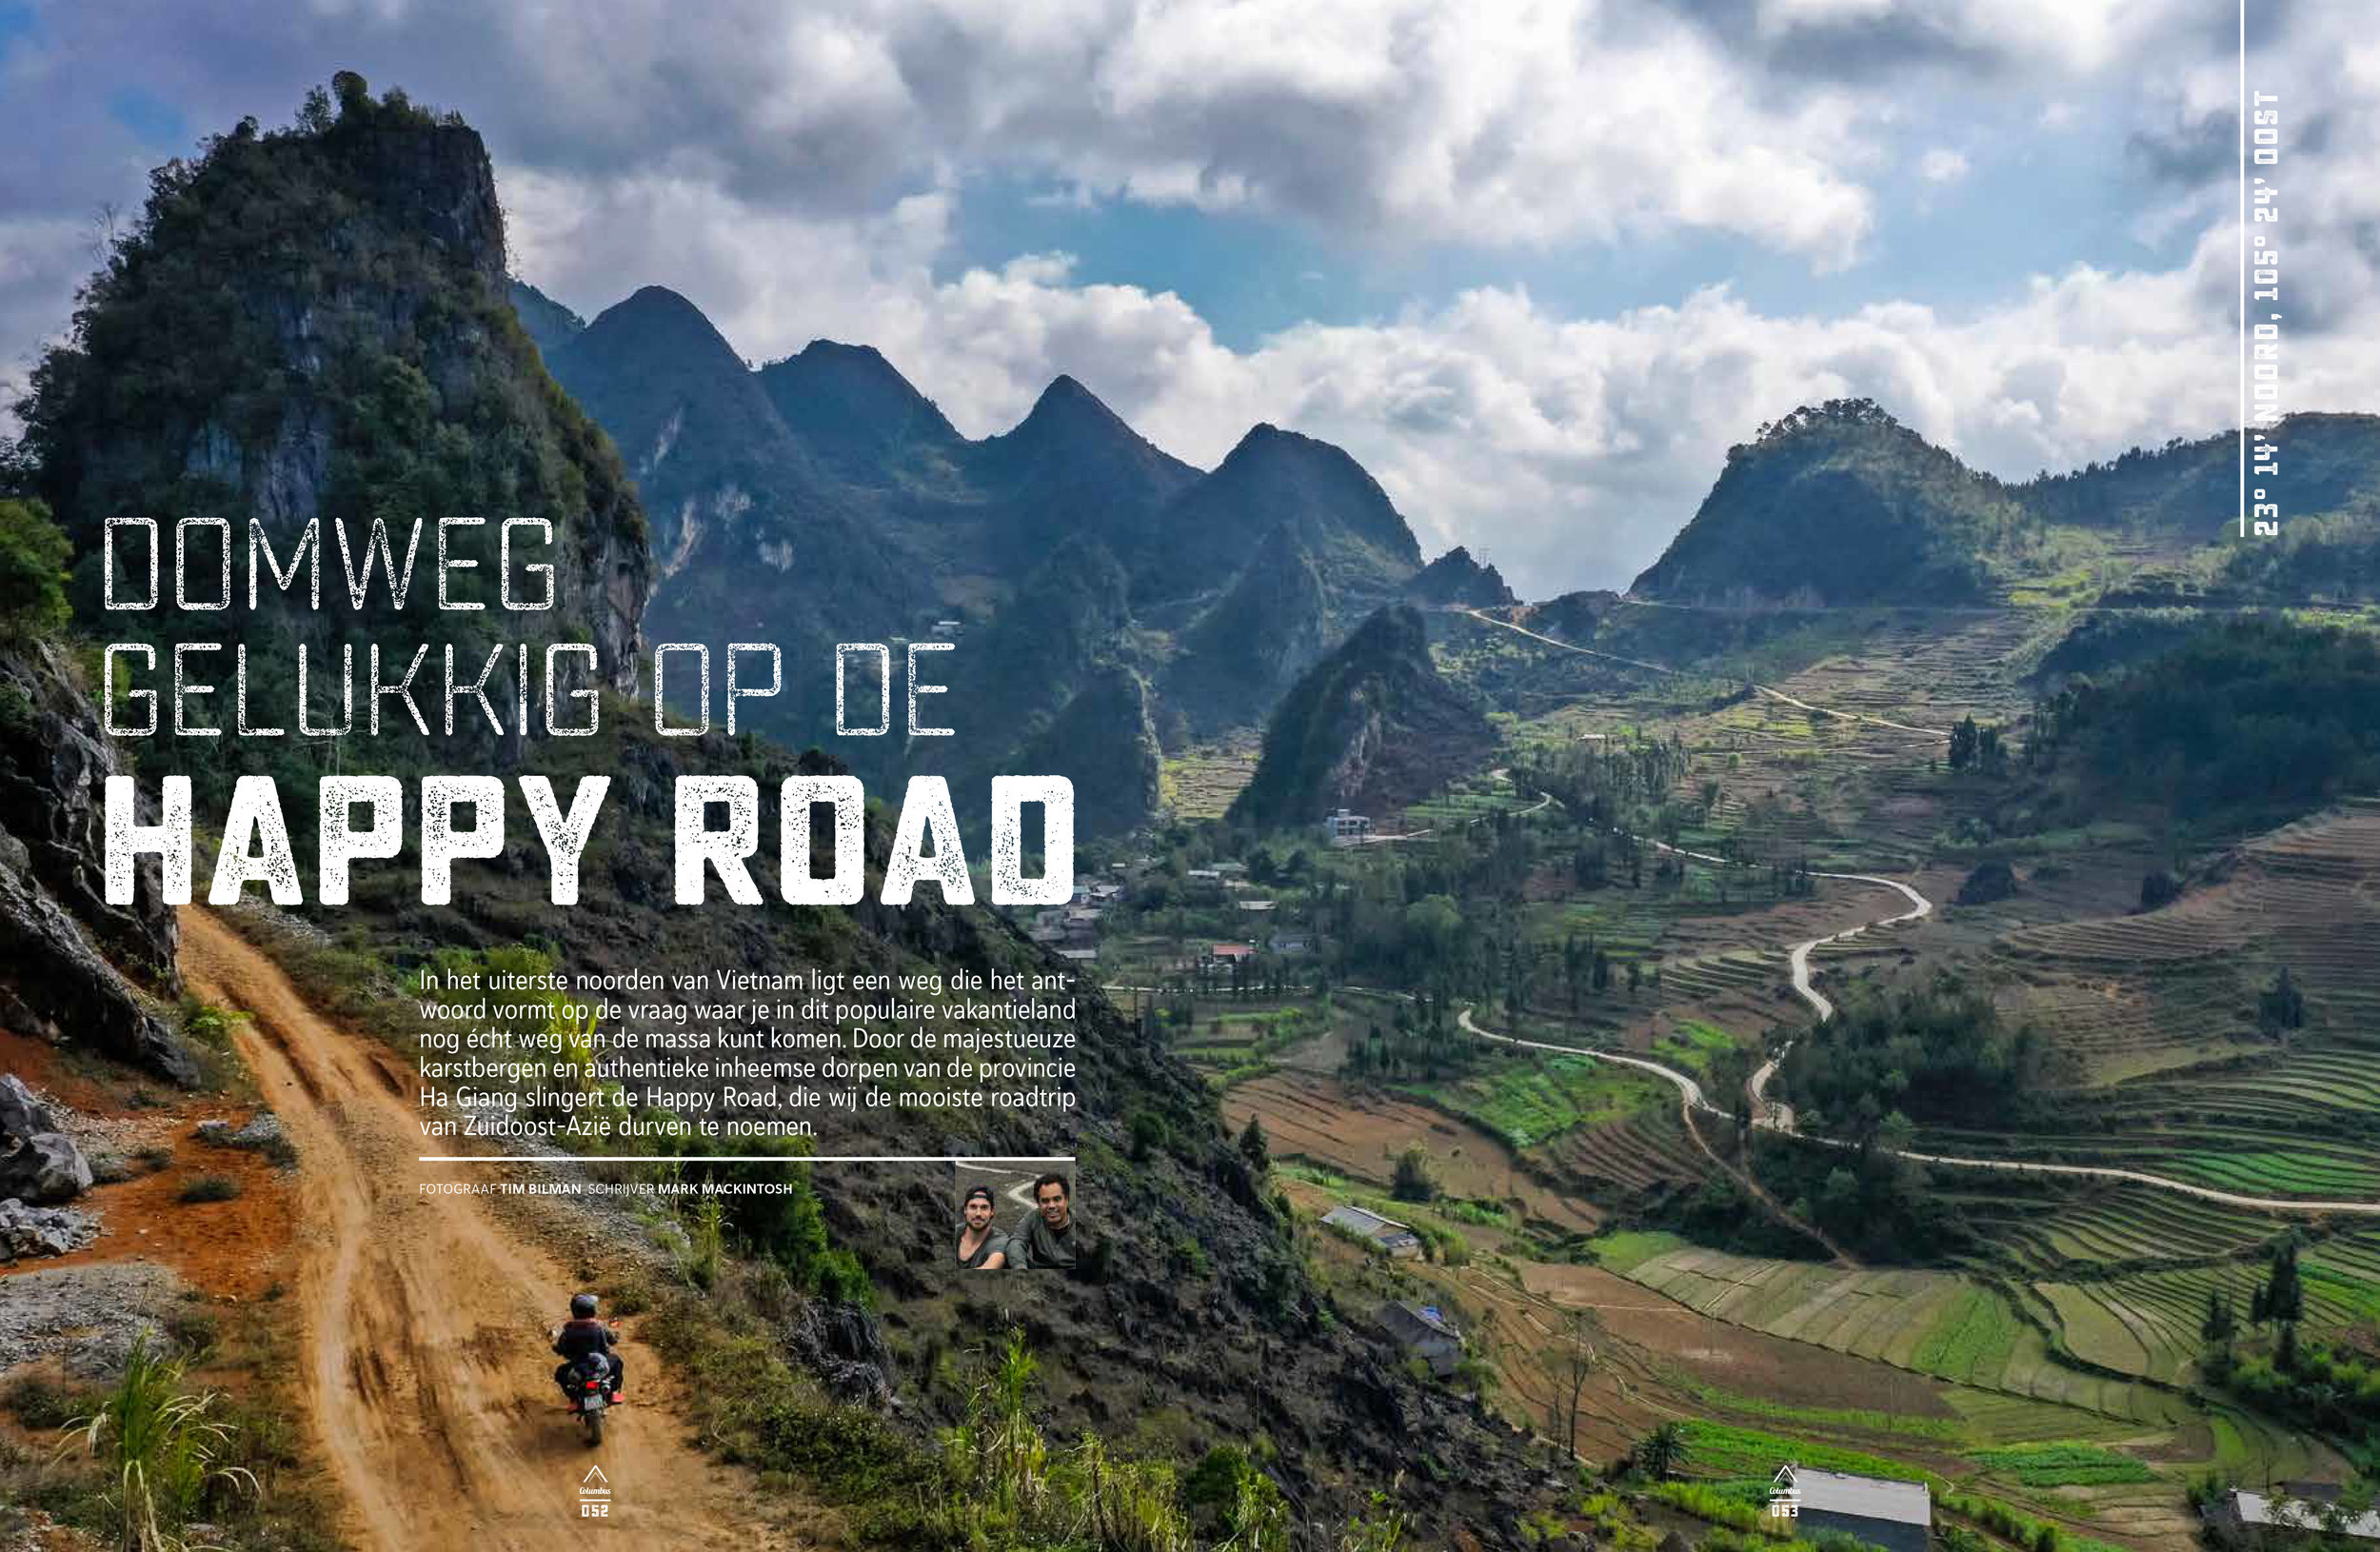 Ha Giang - February '19 Mark and I went to the Ha Giang Region in Vietnam. We took a ride on the happy road. One of worlds most impressive mountain roads. Heaven for motorcyclists. The article was published in April '19 in Columbus travel edition 80.